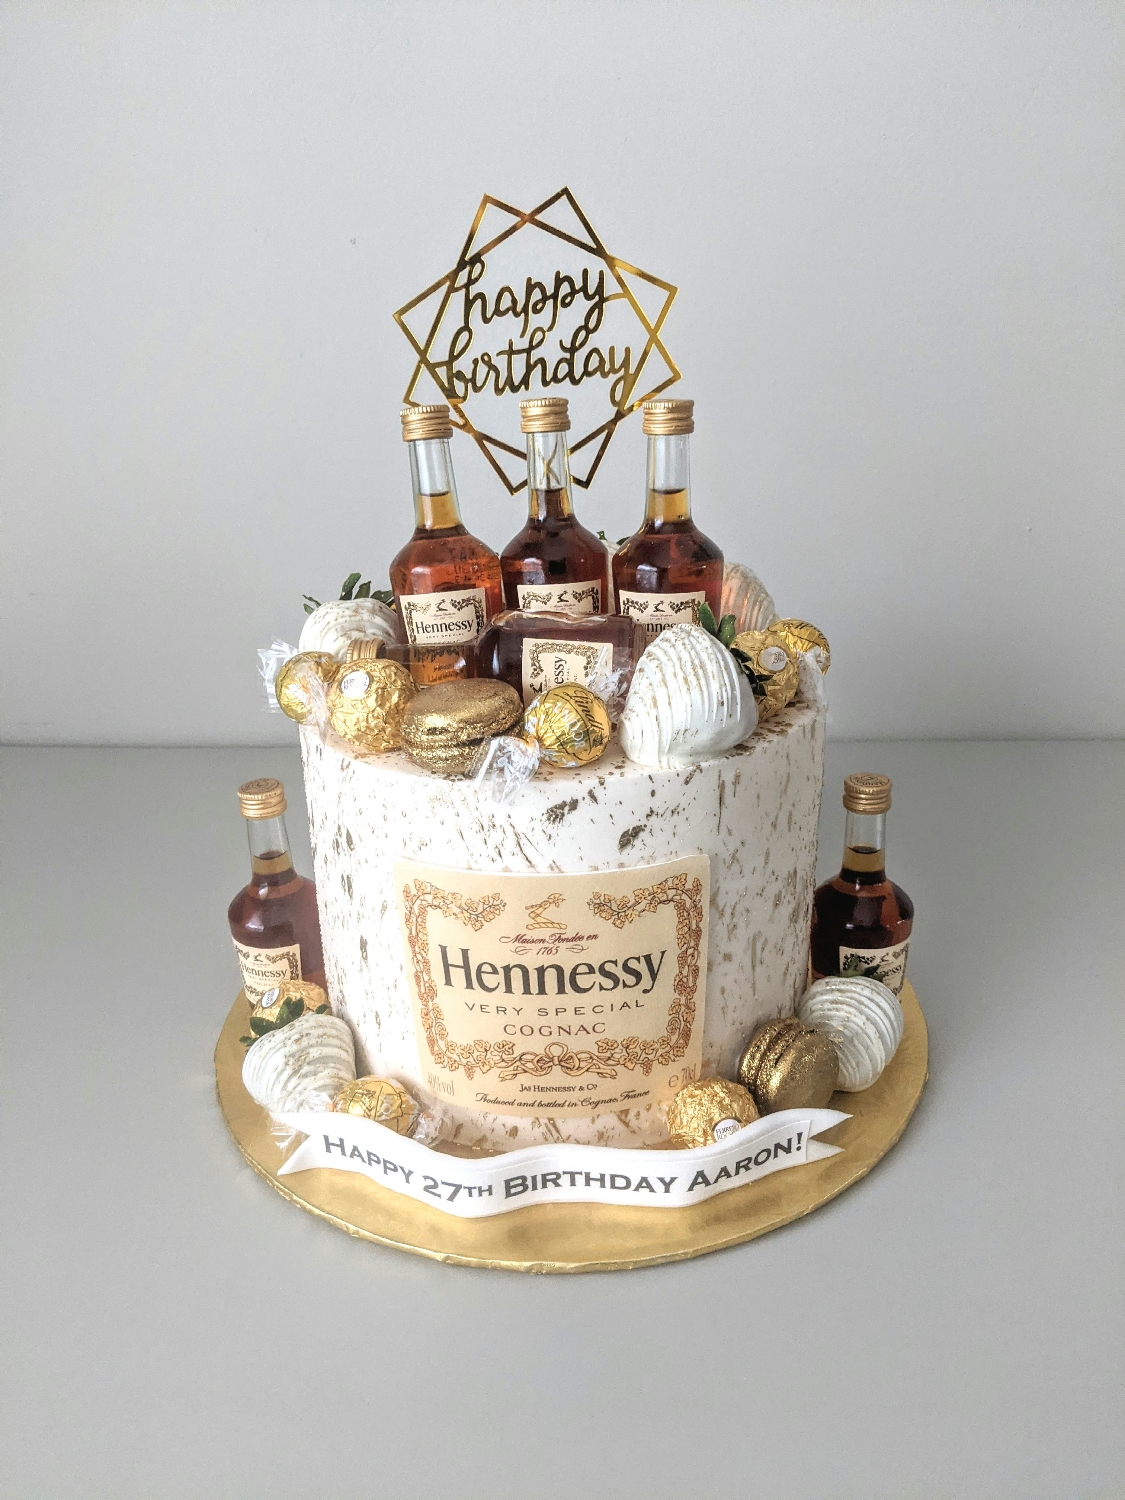 Hennessy Adult Beverage Cake